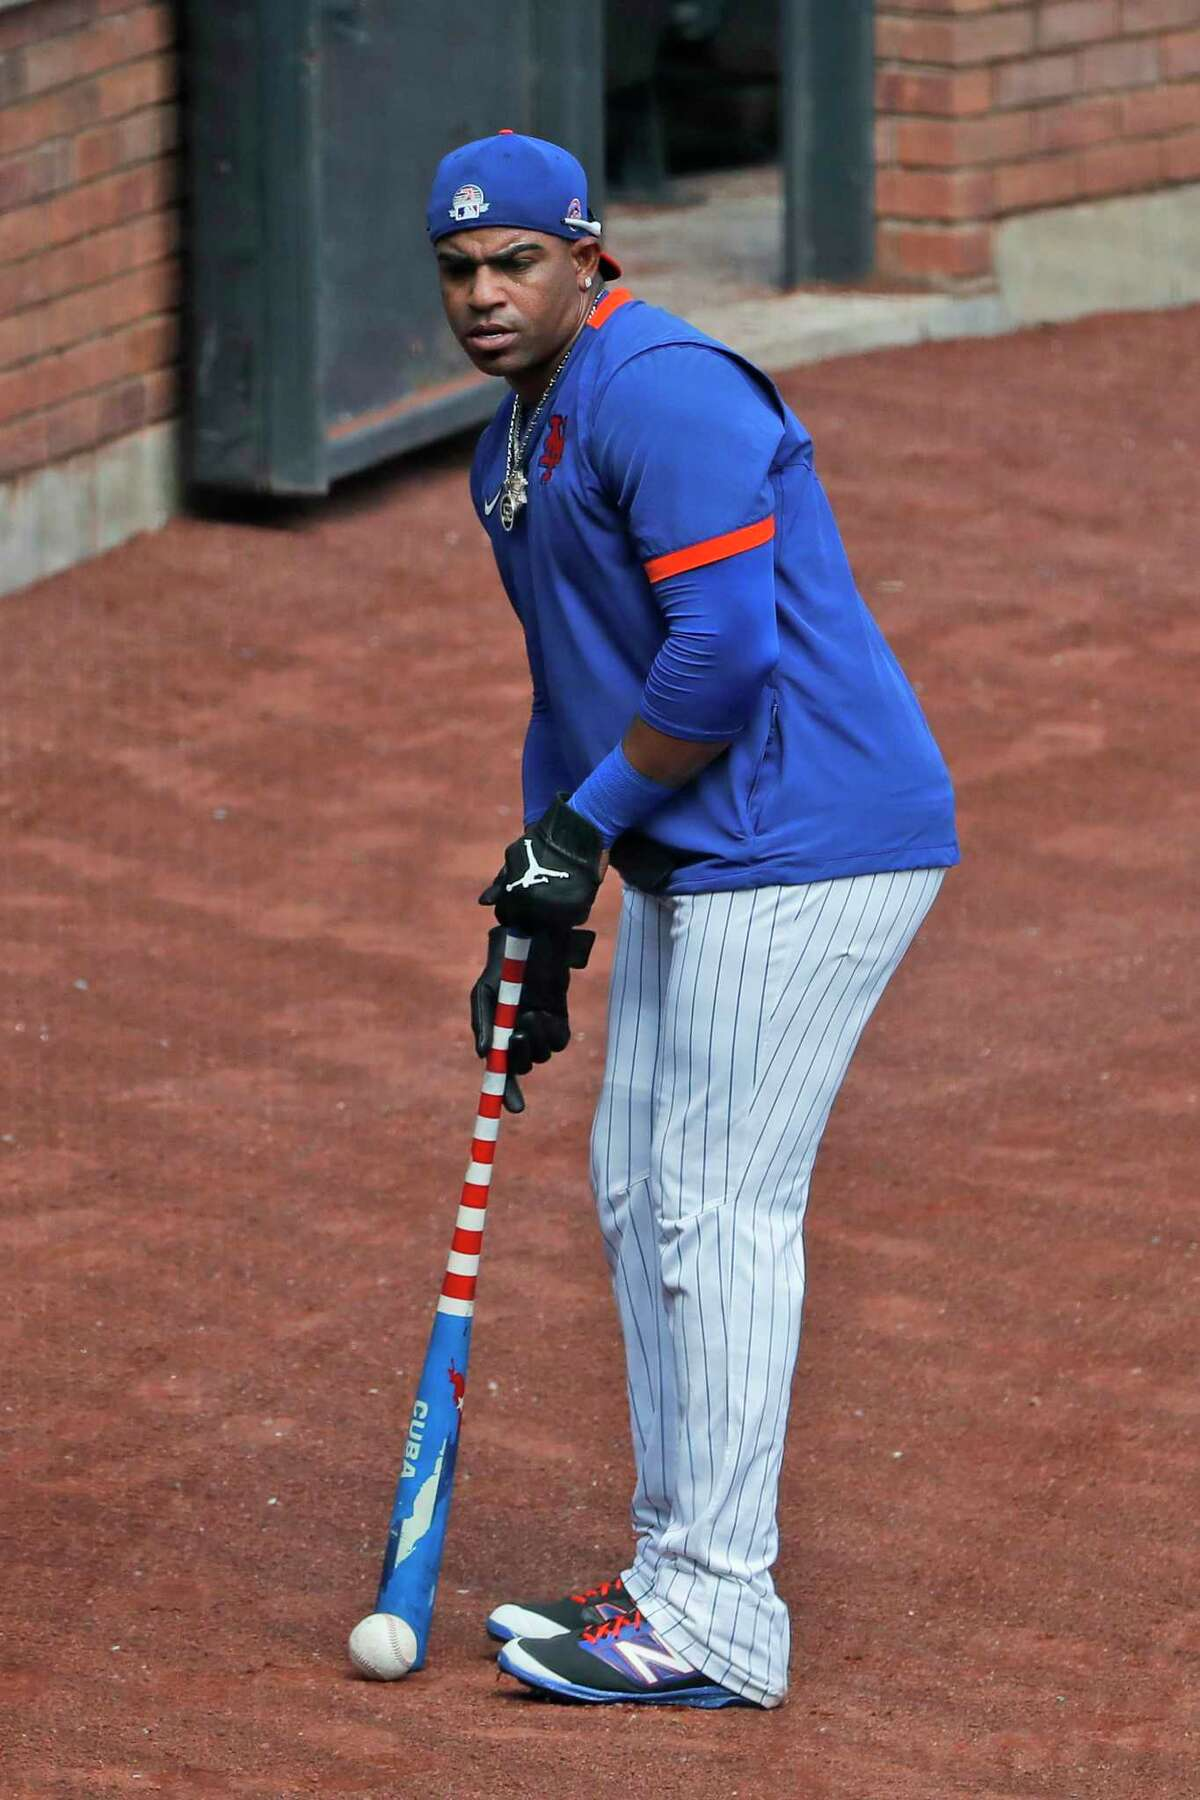 New York Mets left fielder Yoenis Cespedes works on his putting skills during a baseball workout at Citi Field, Sunday, July 5, 2020, in New York. (AP Photo/Seth Wenig)